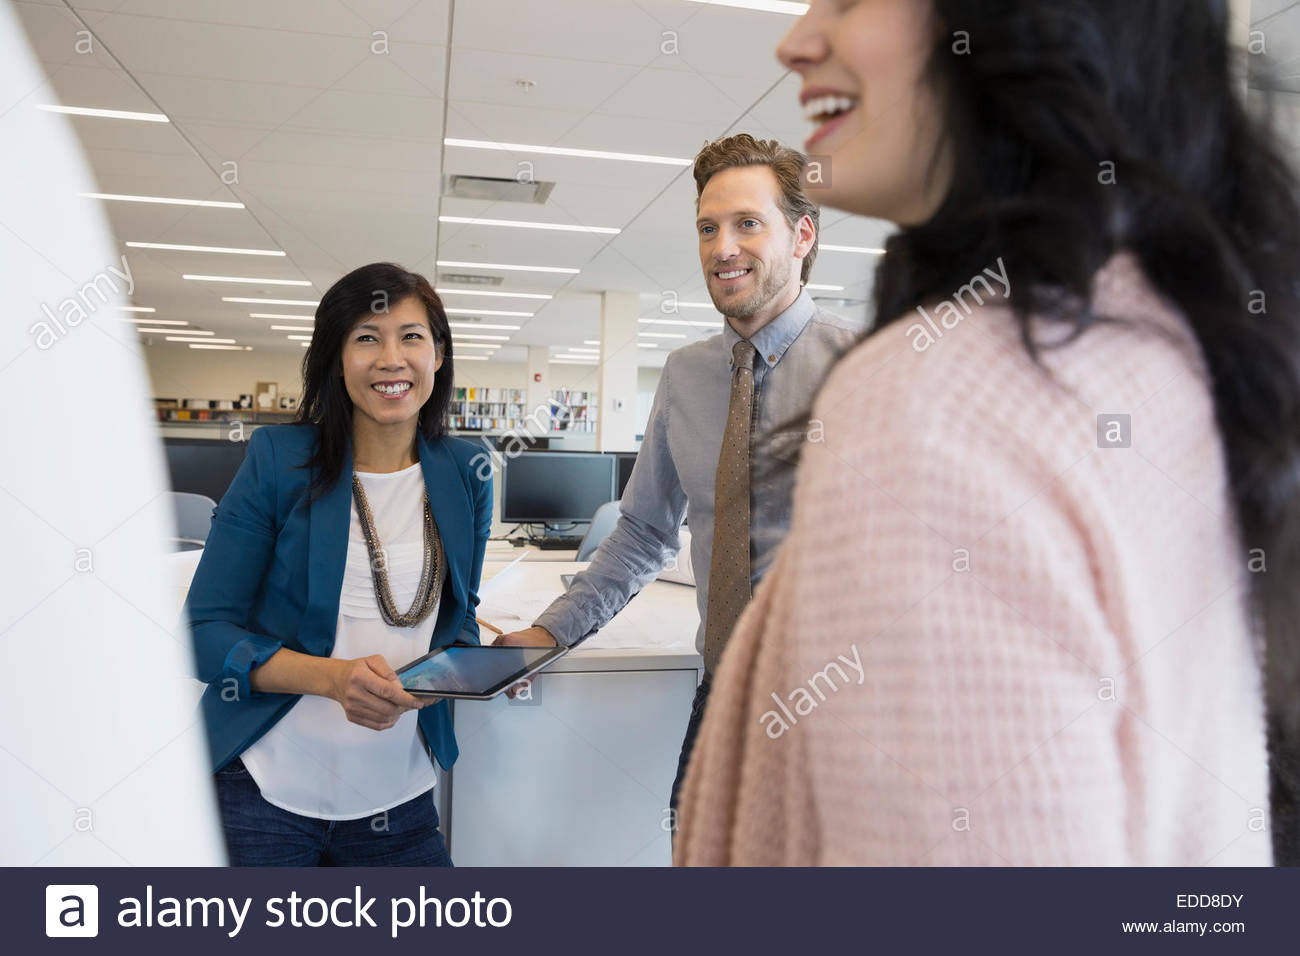 Smiling business people talking in circle - Stock Image